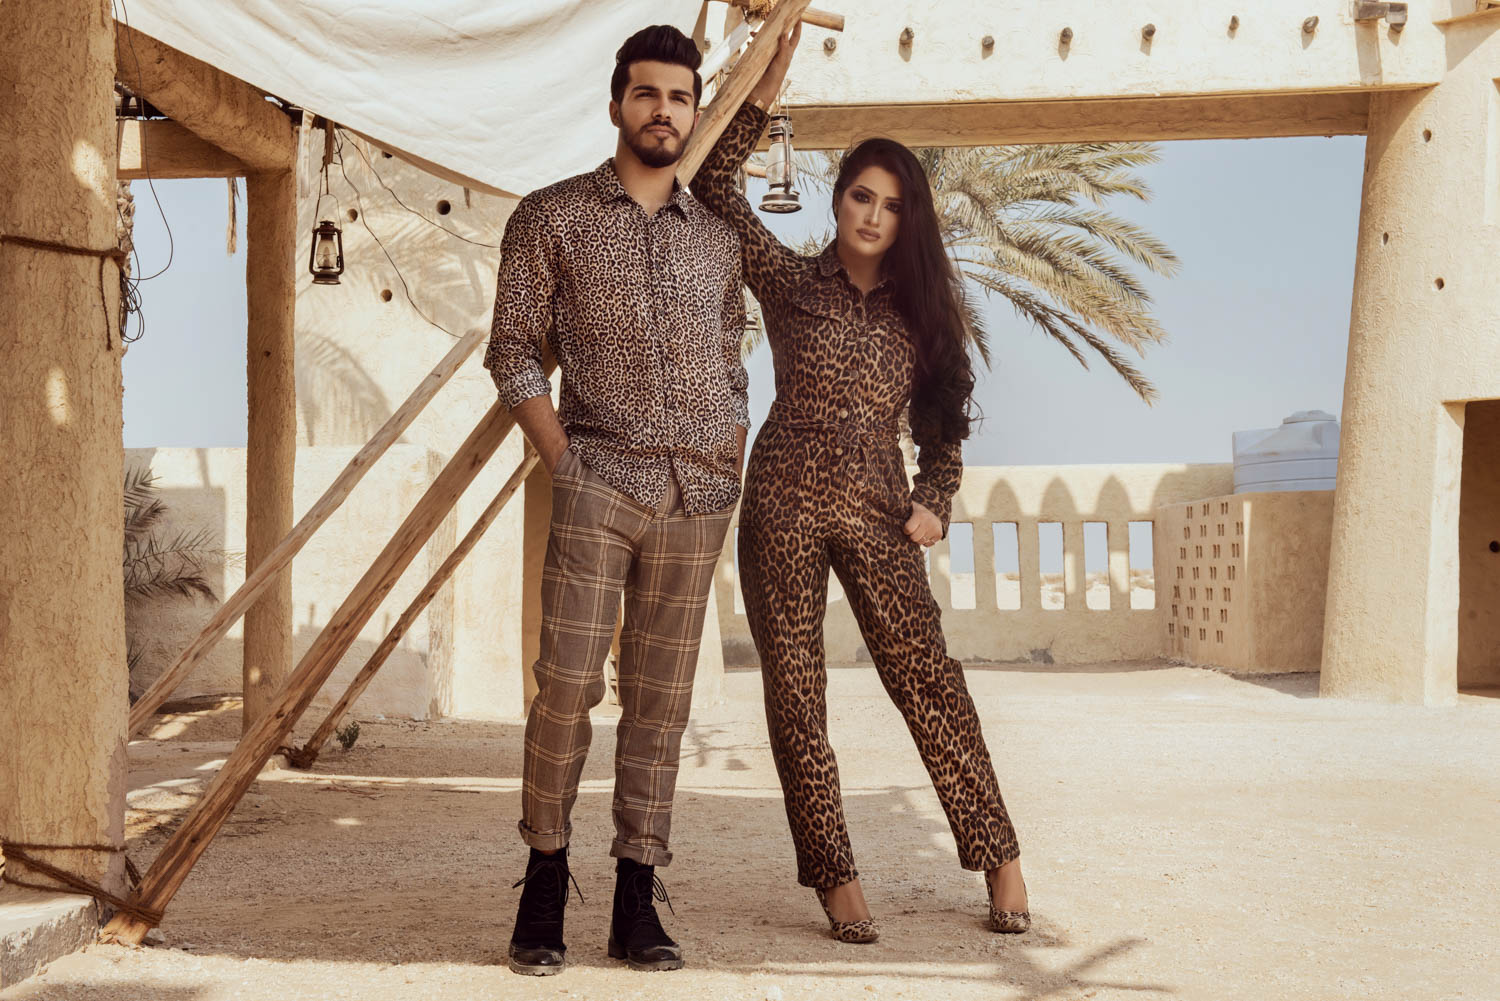 Qatar fashion campaign